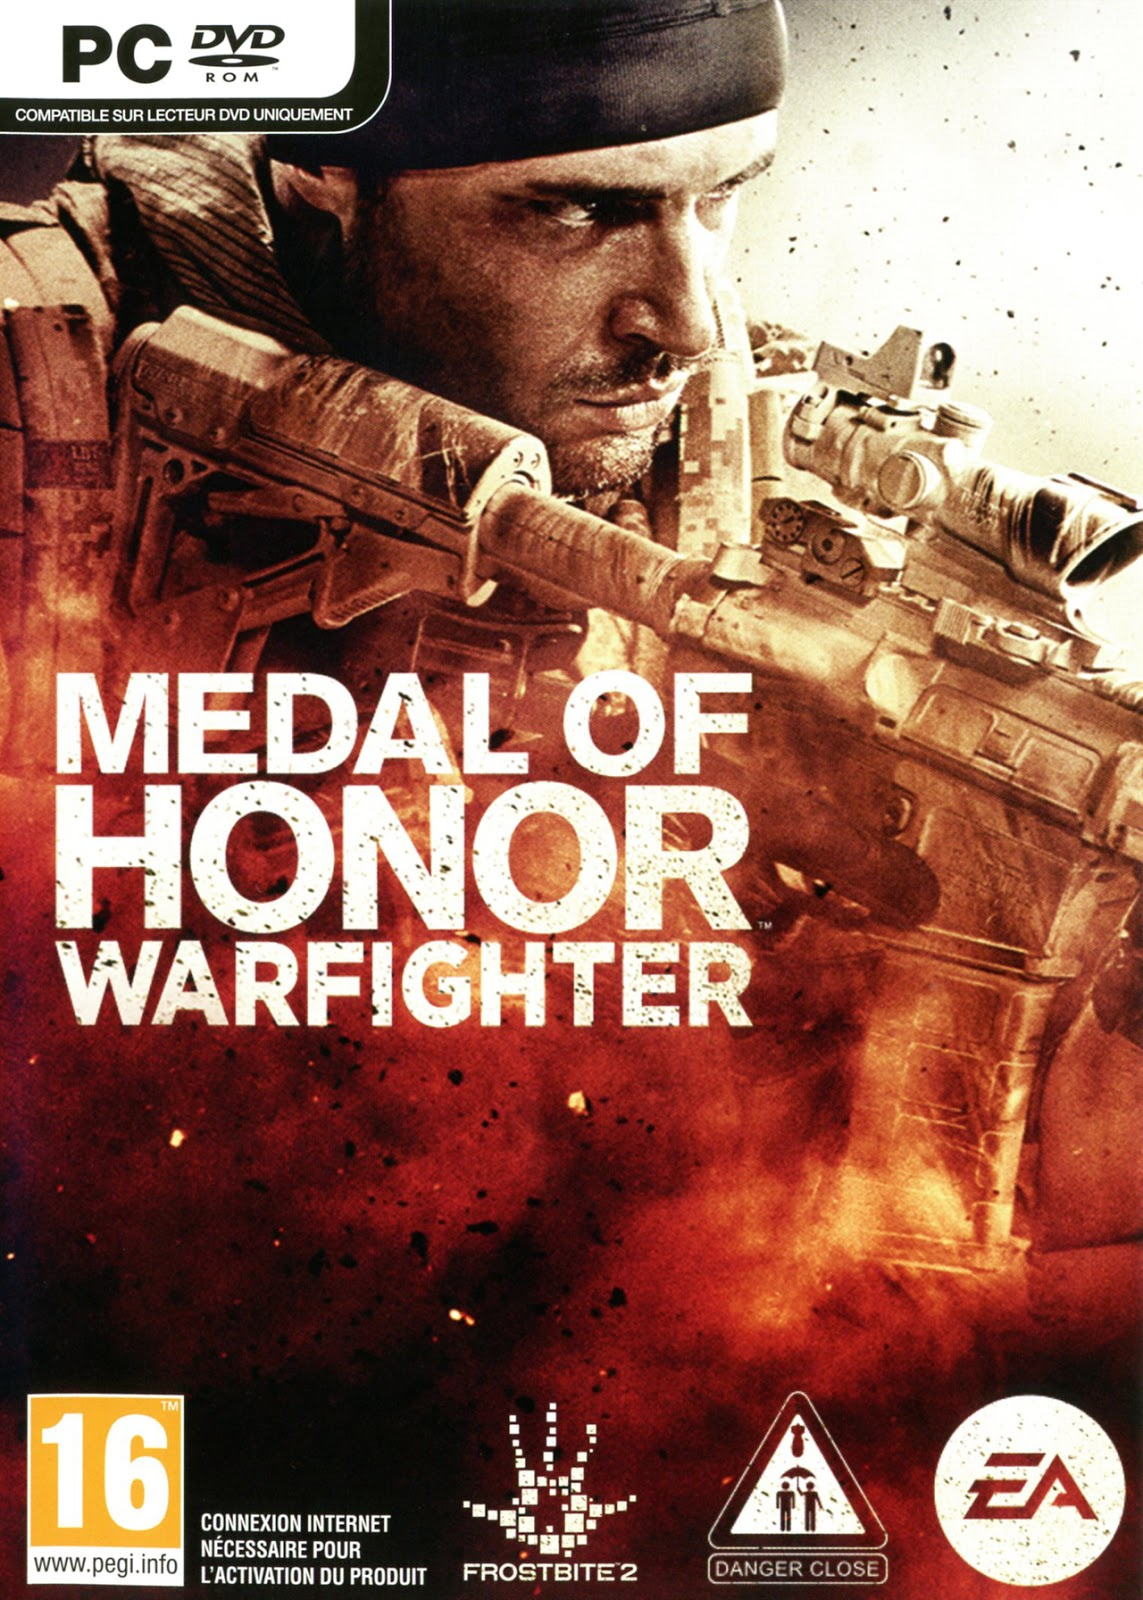 https://www.micromania.fr/medal-of-honor-collection-quadripack-33718.html